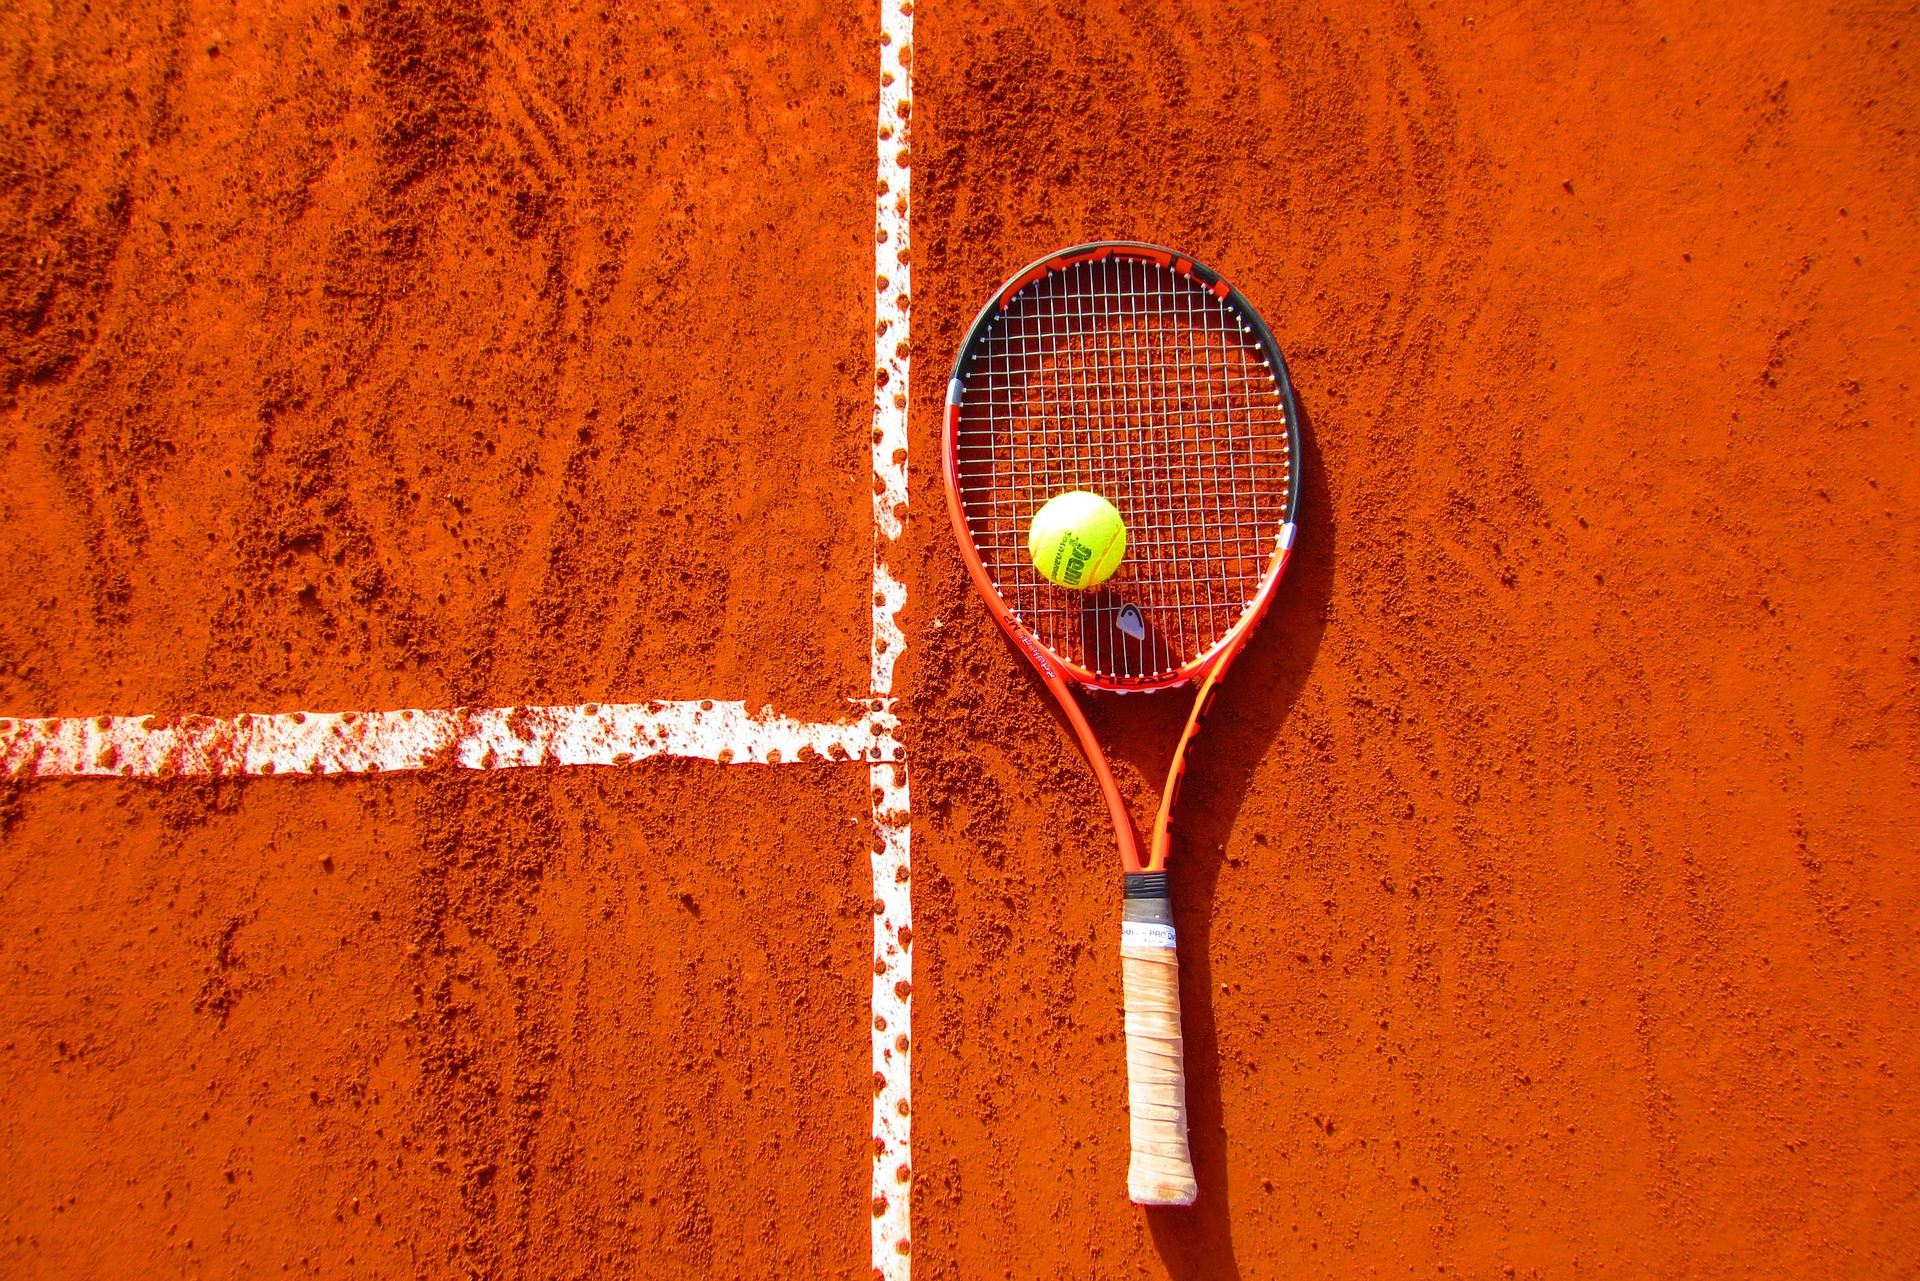 A tennis racket and ball on a clay court.